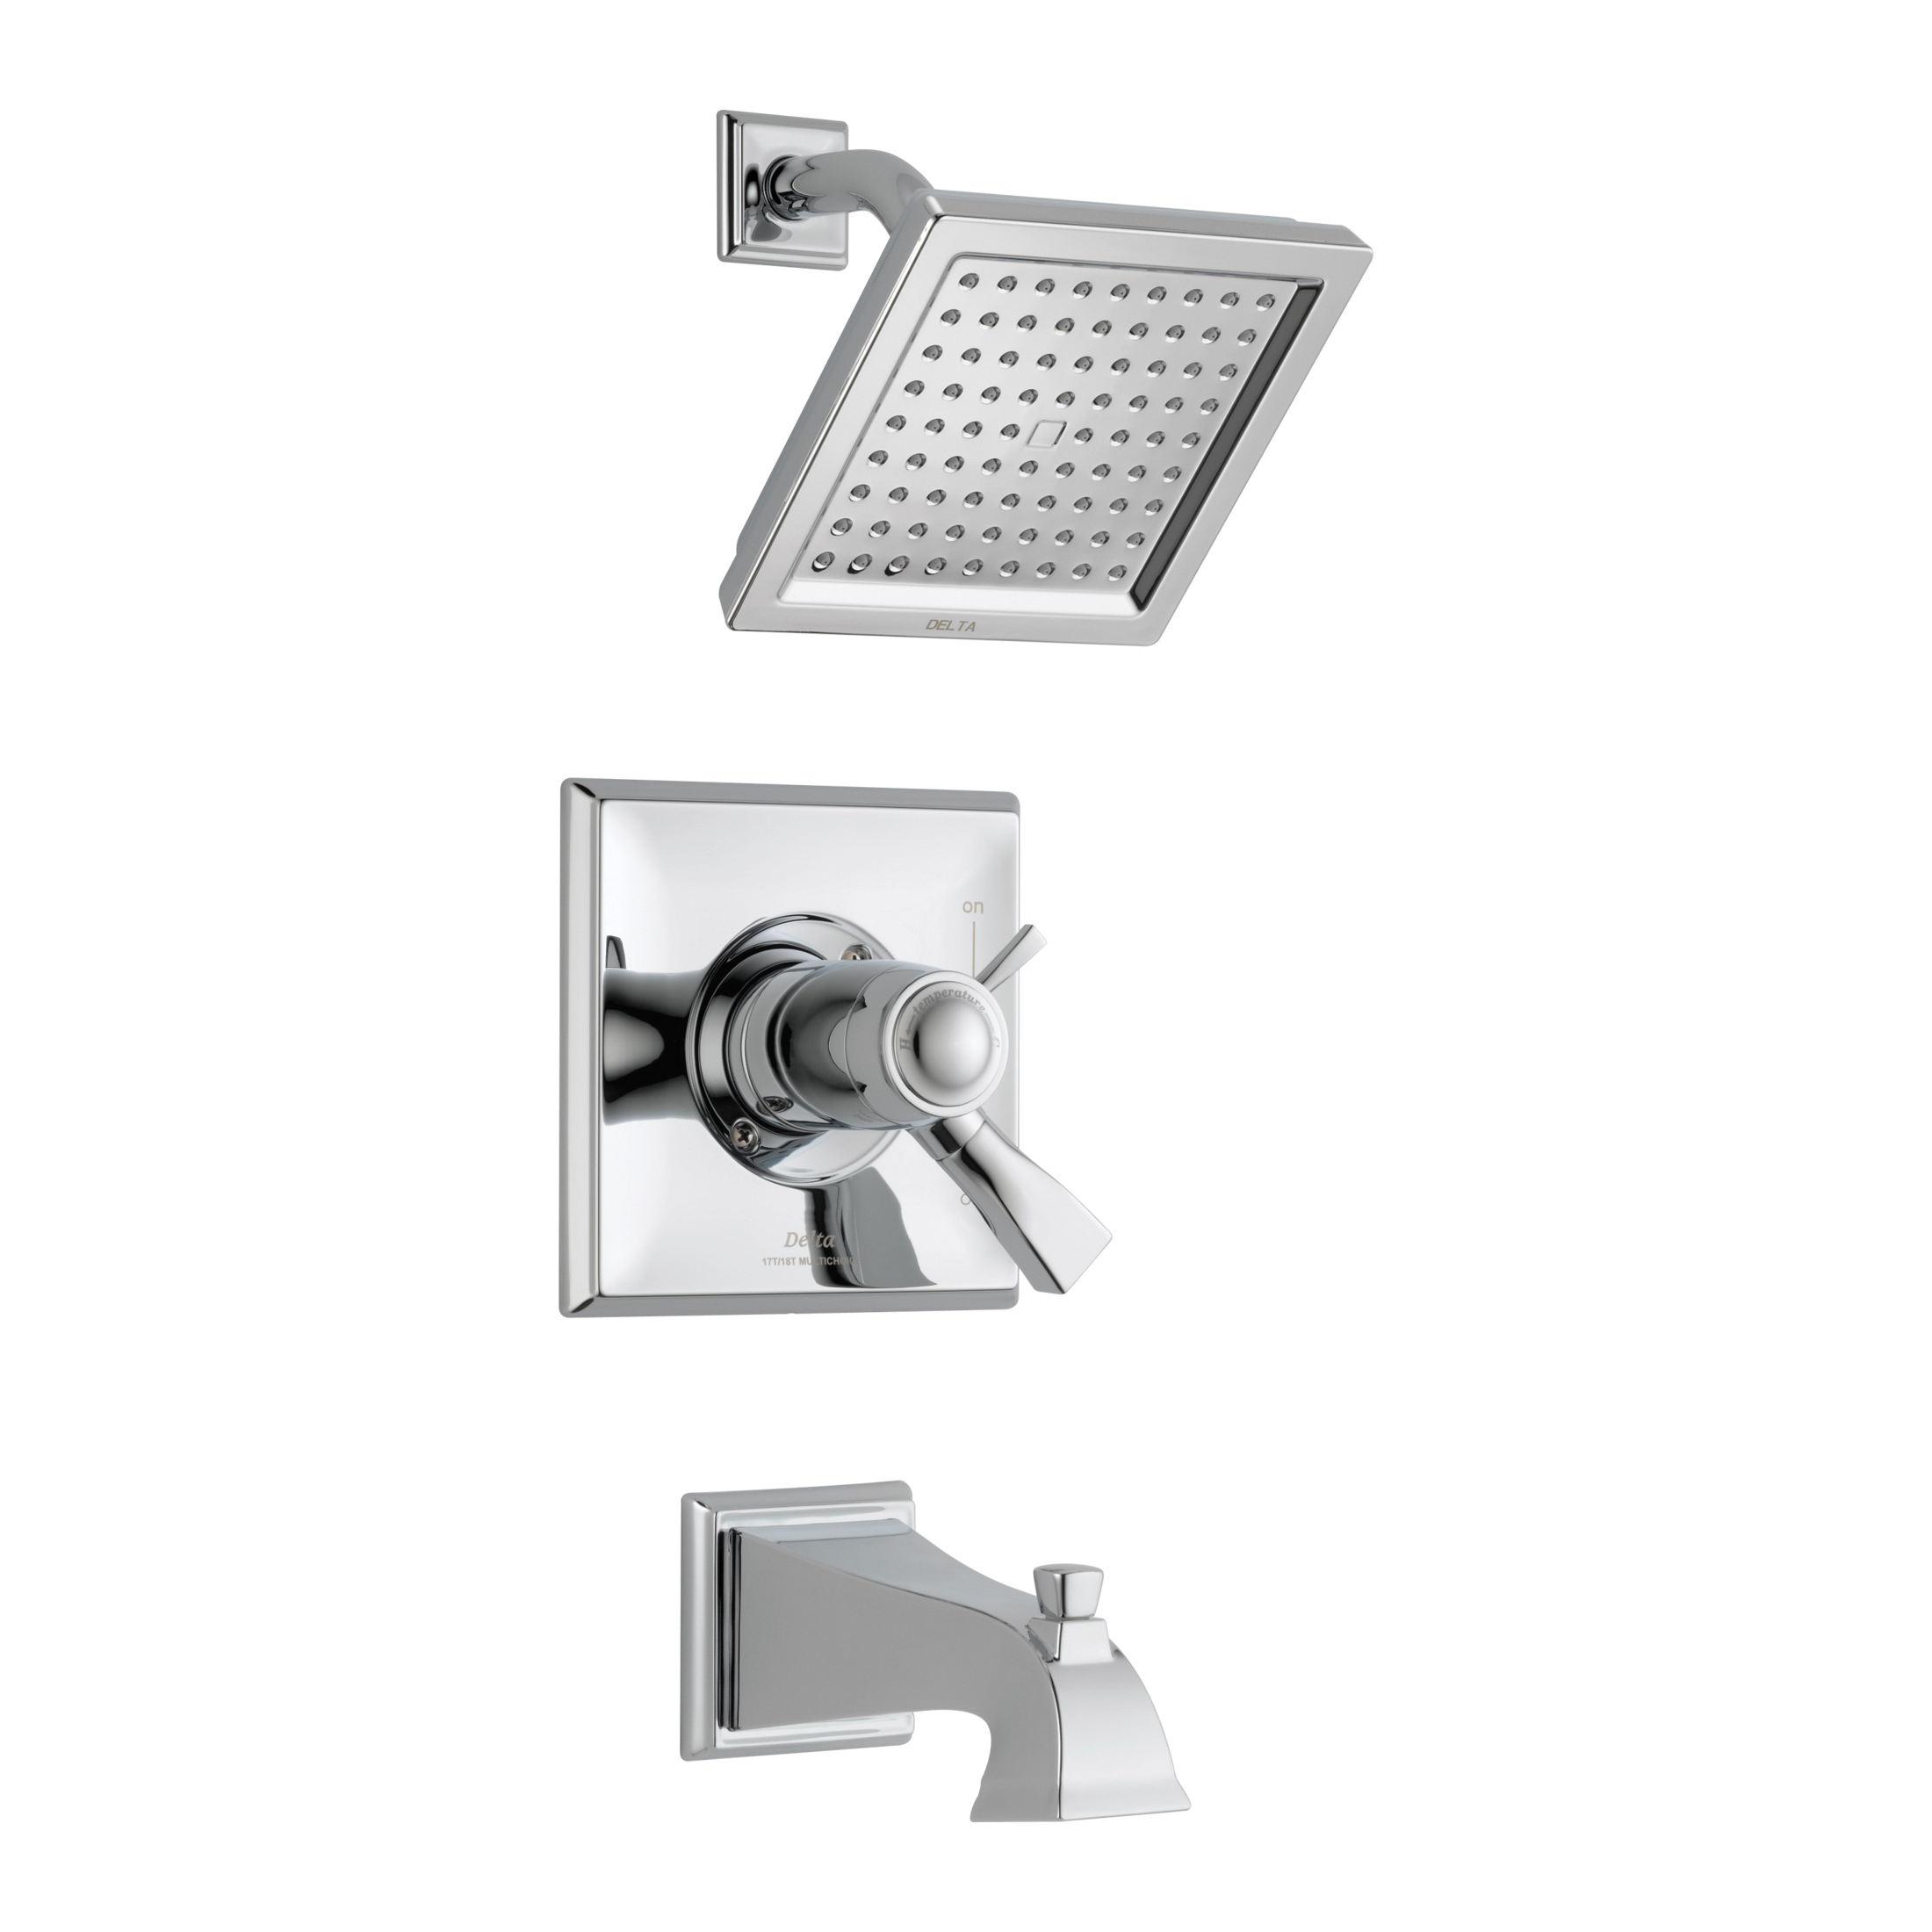 DELTA® T17T451 TempAssure® 17T Tub and Shower Trim, 2.5 gpm Shower, Hand Shower Yes/No: No, Chrome Plated